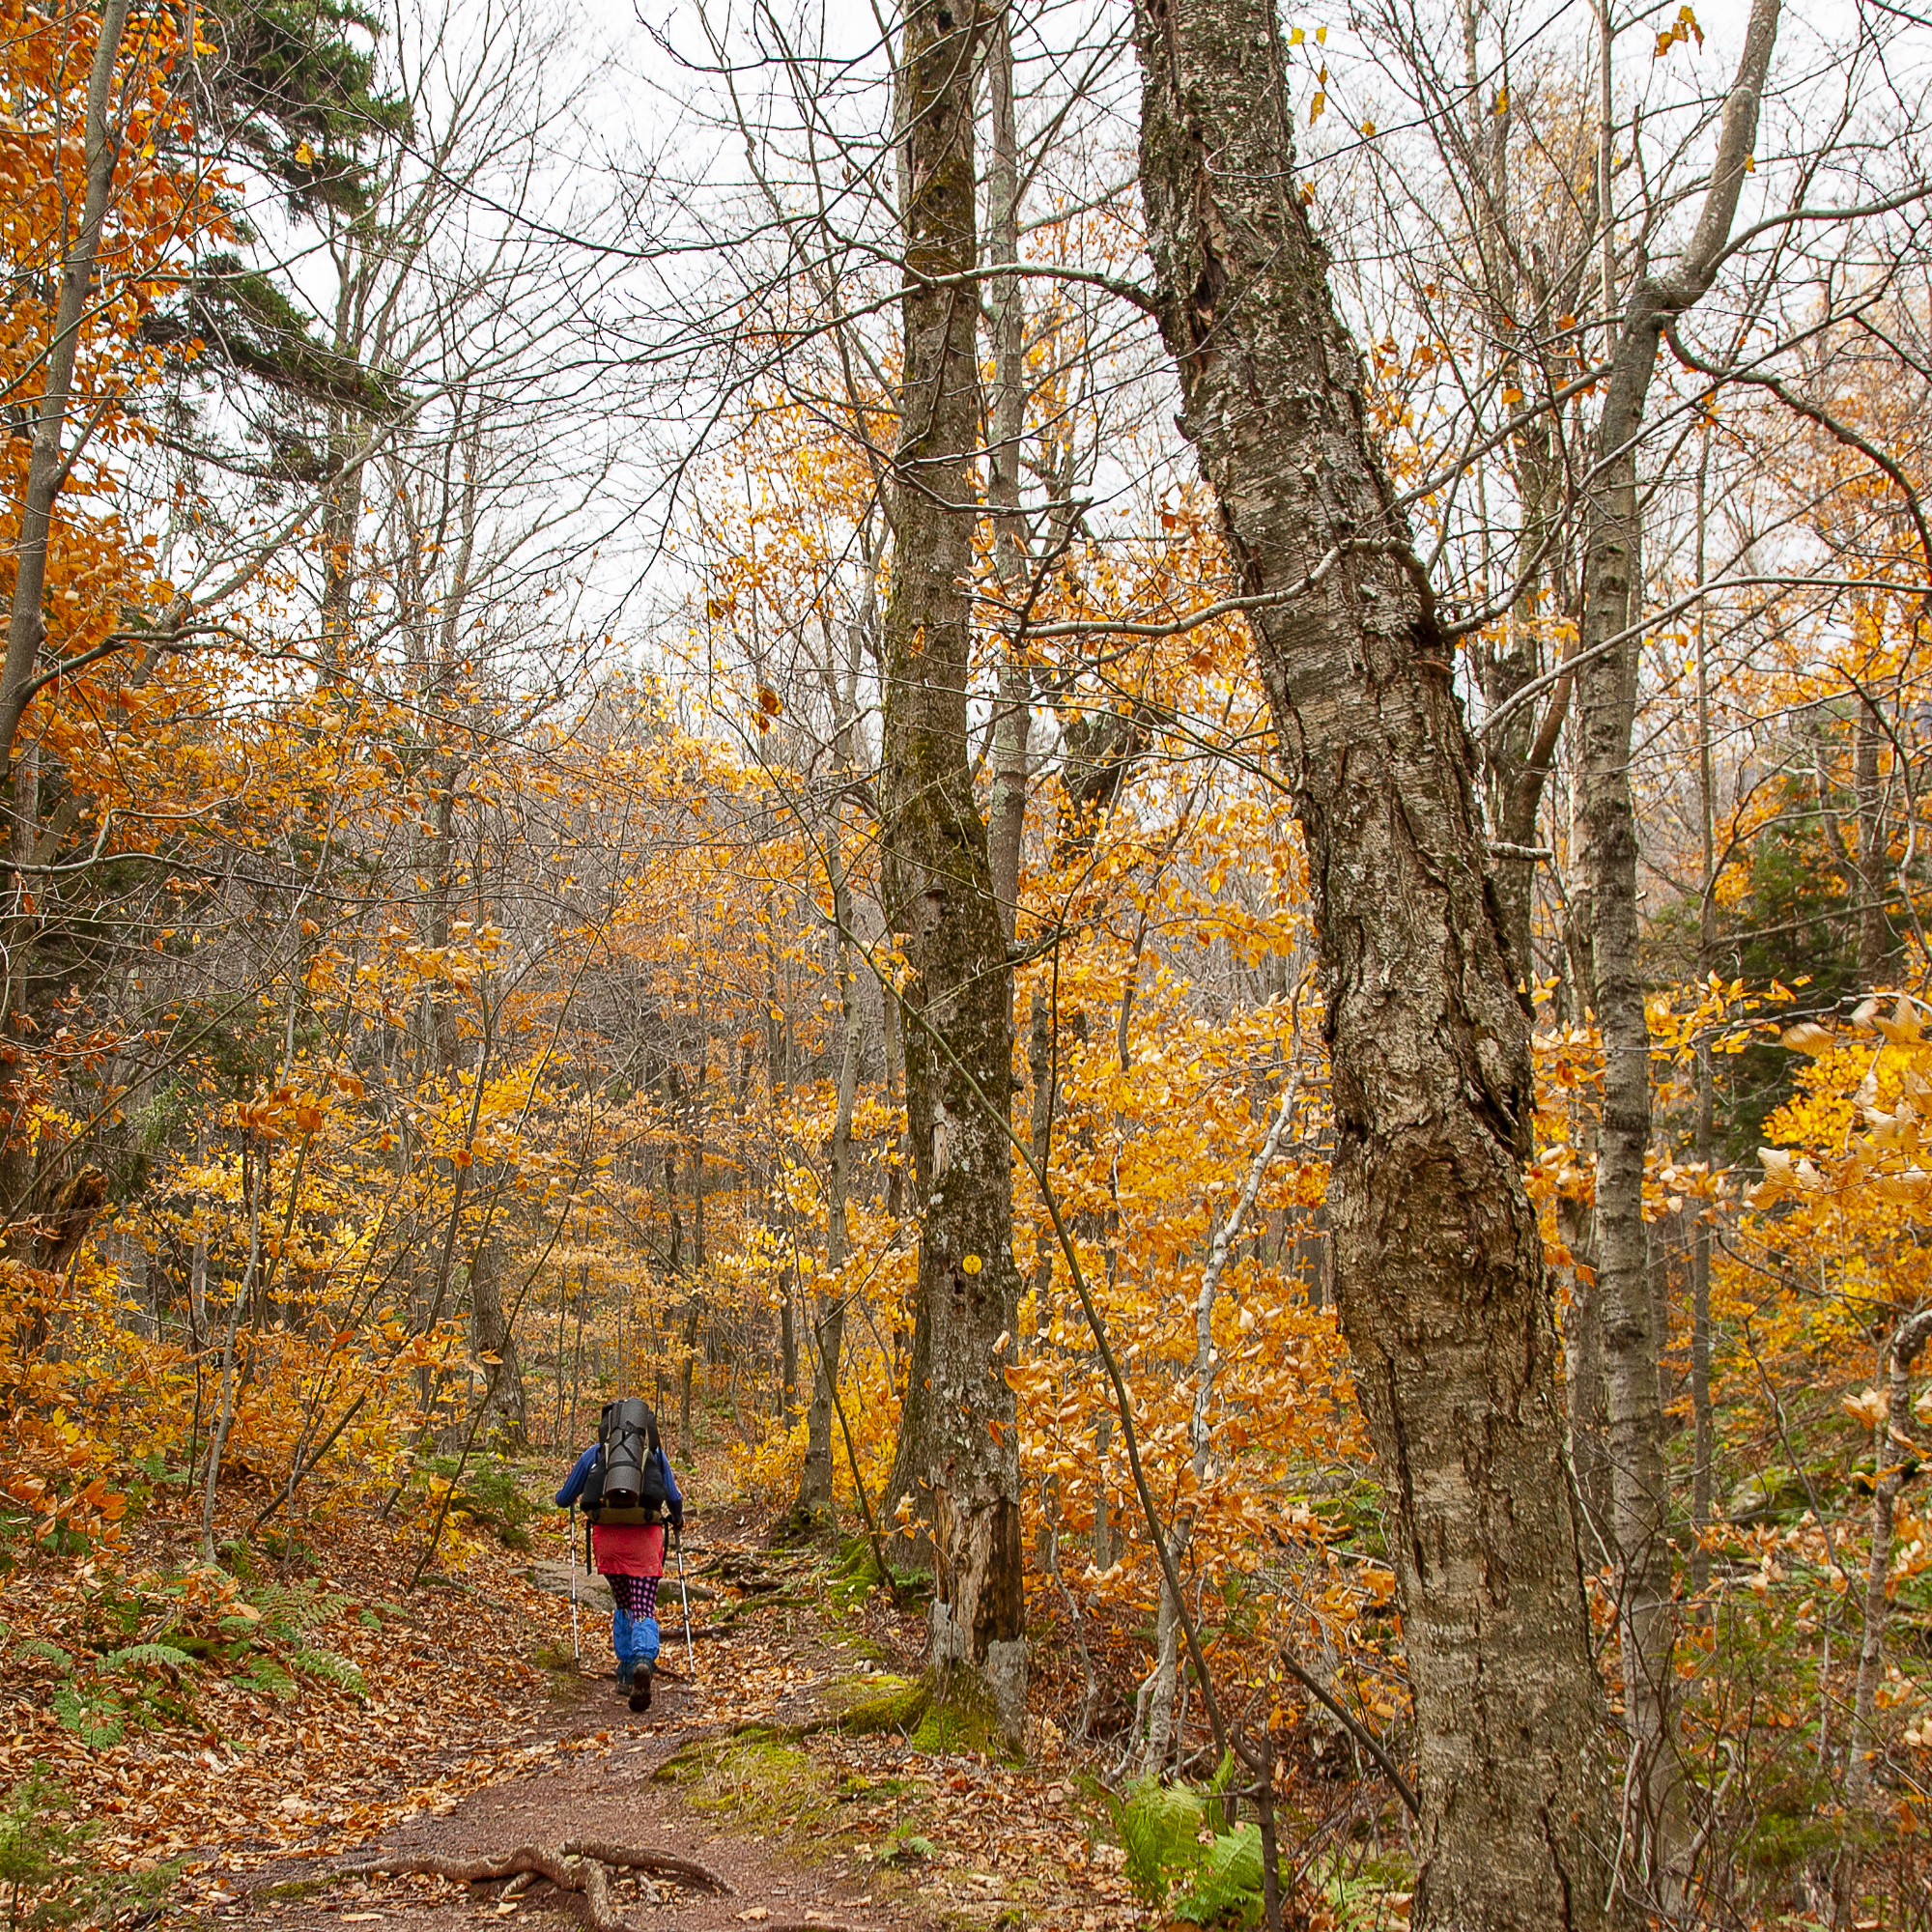 20121021_Hiking_Escarpment Trail with Sprout_0022.jpg